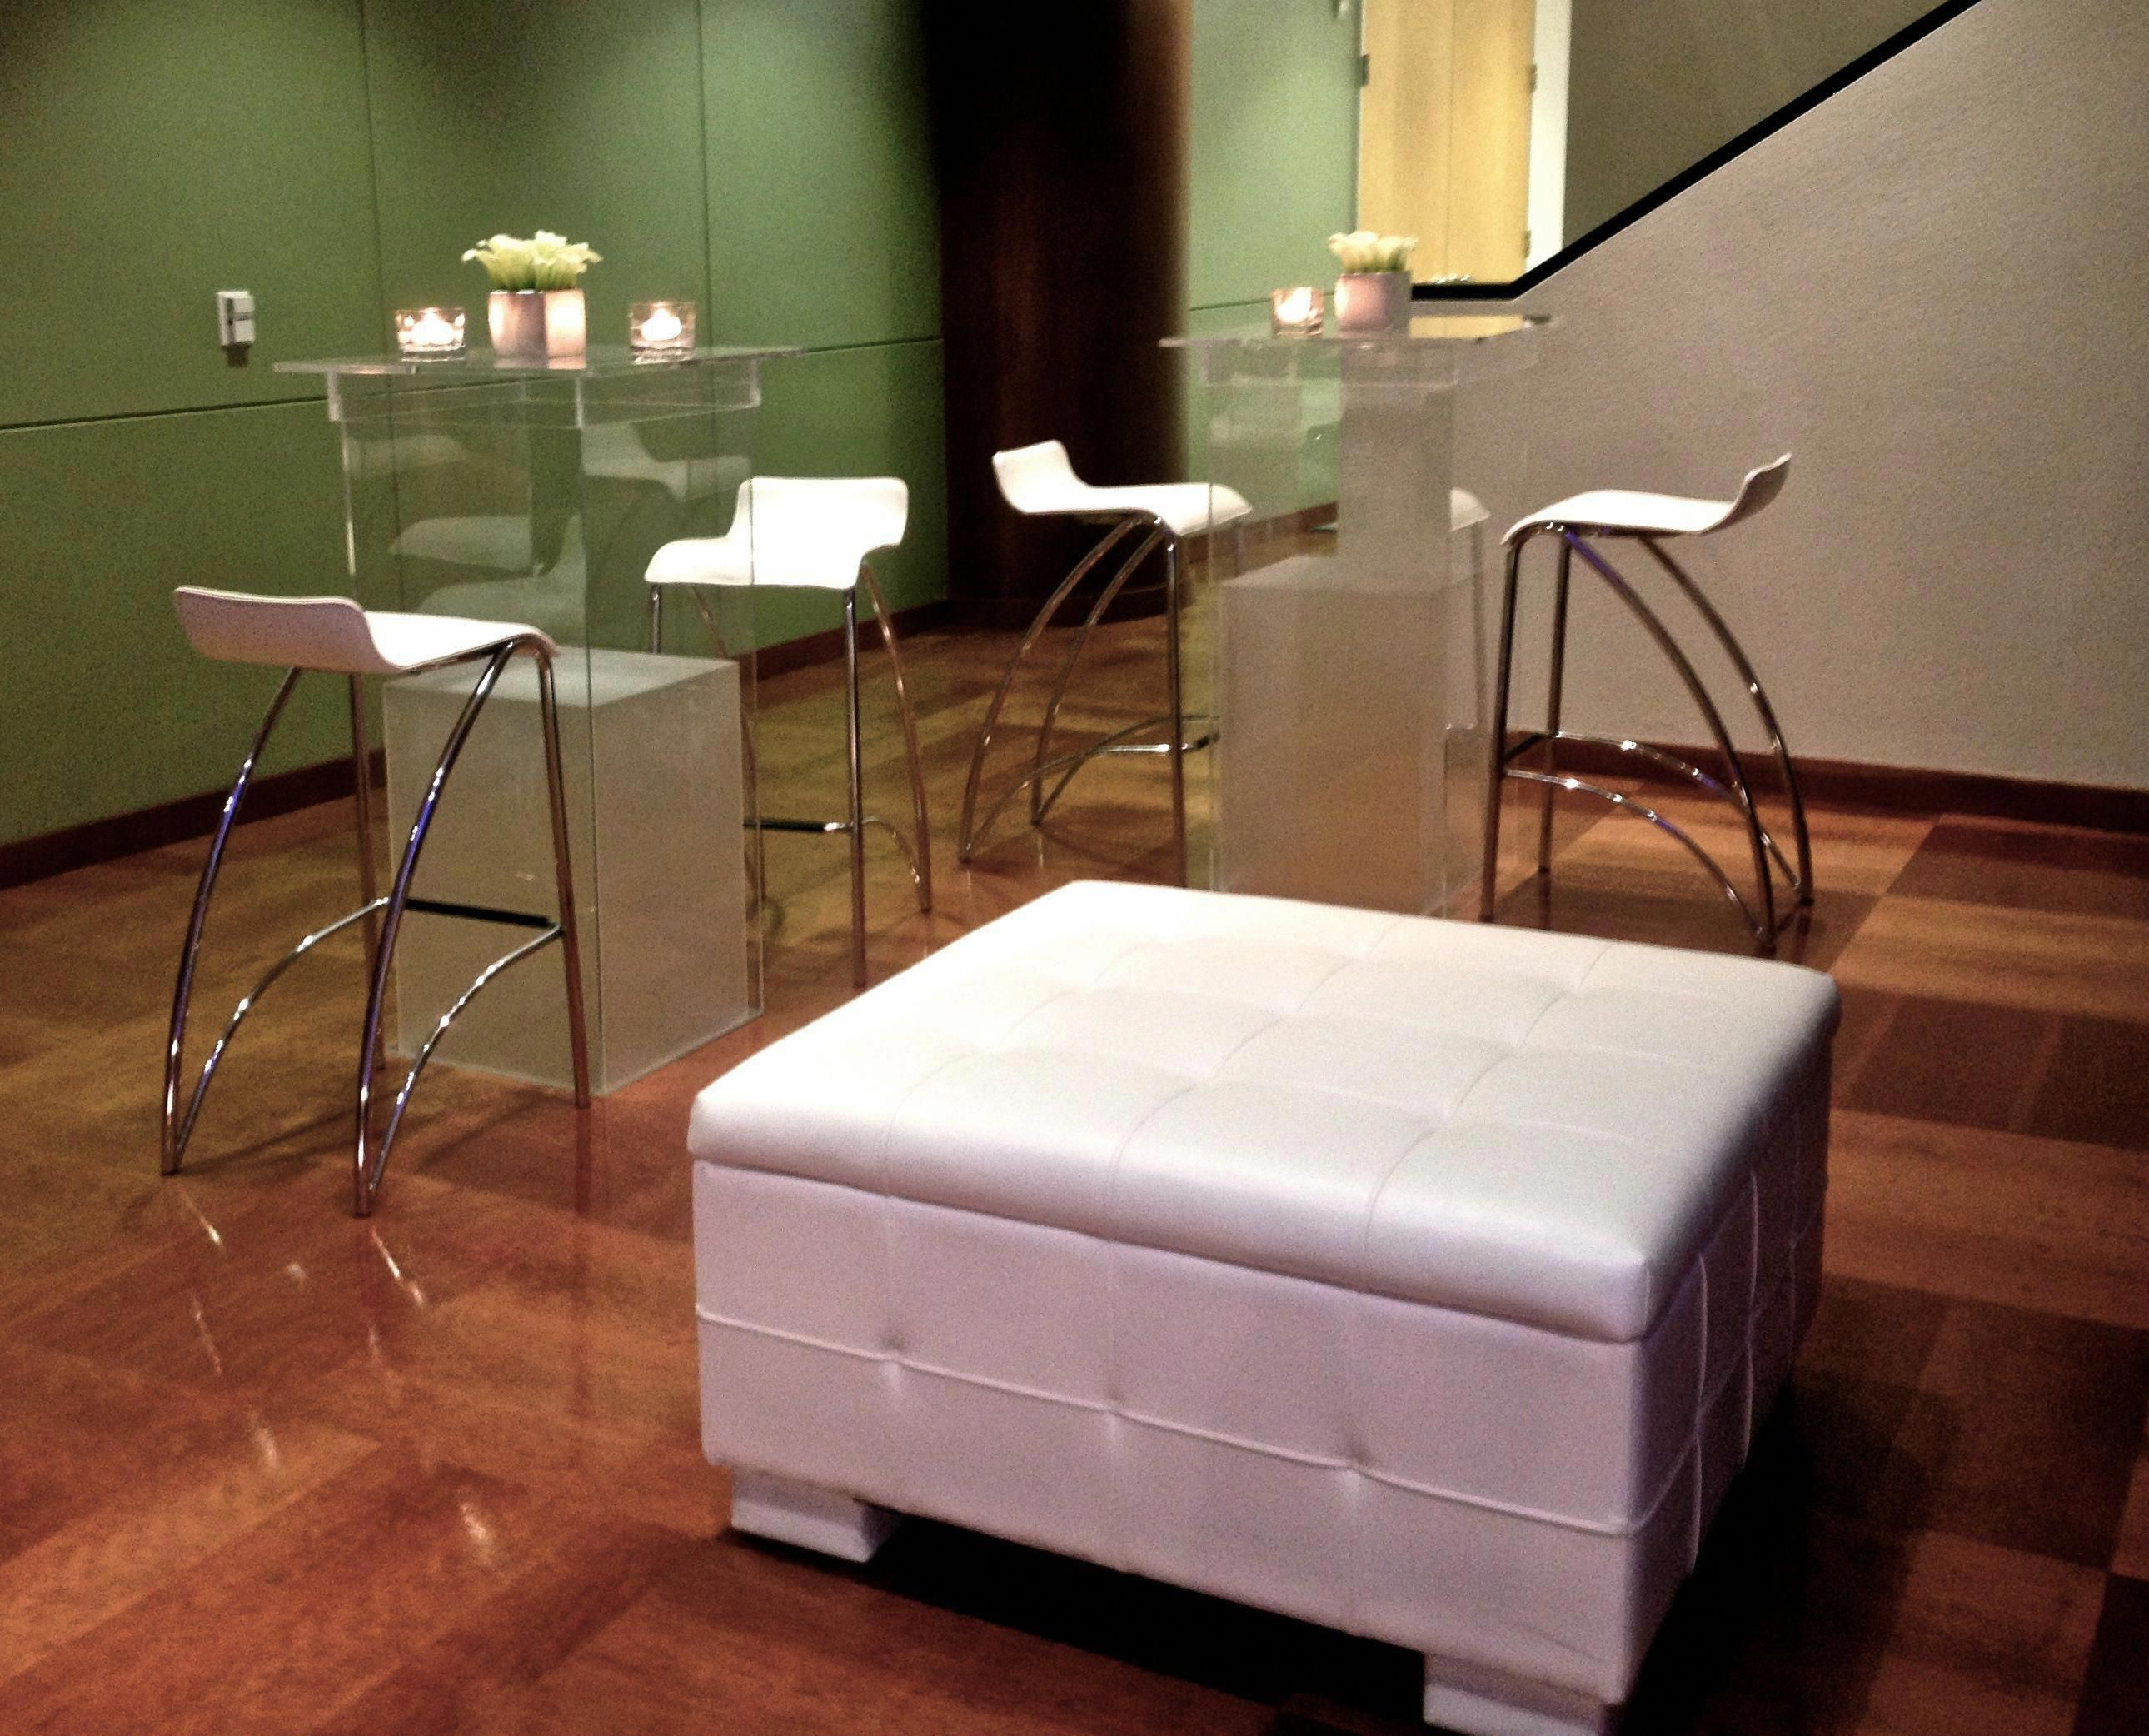 Acrylic high top tables white leather bar stools white lounge